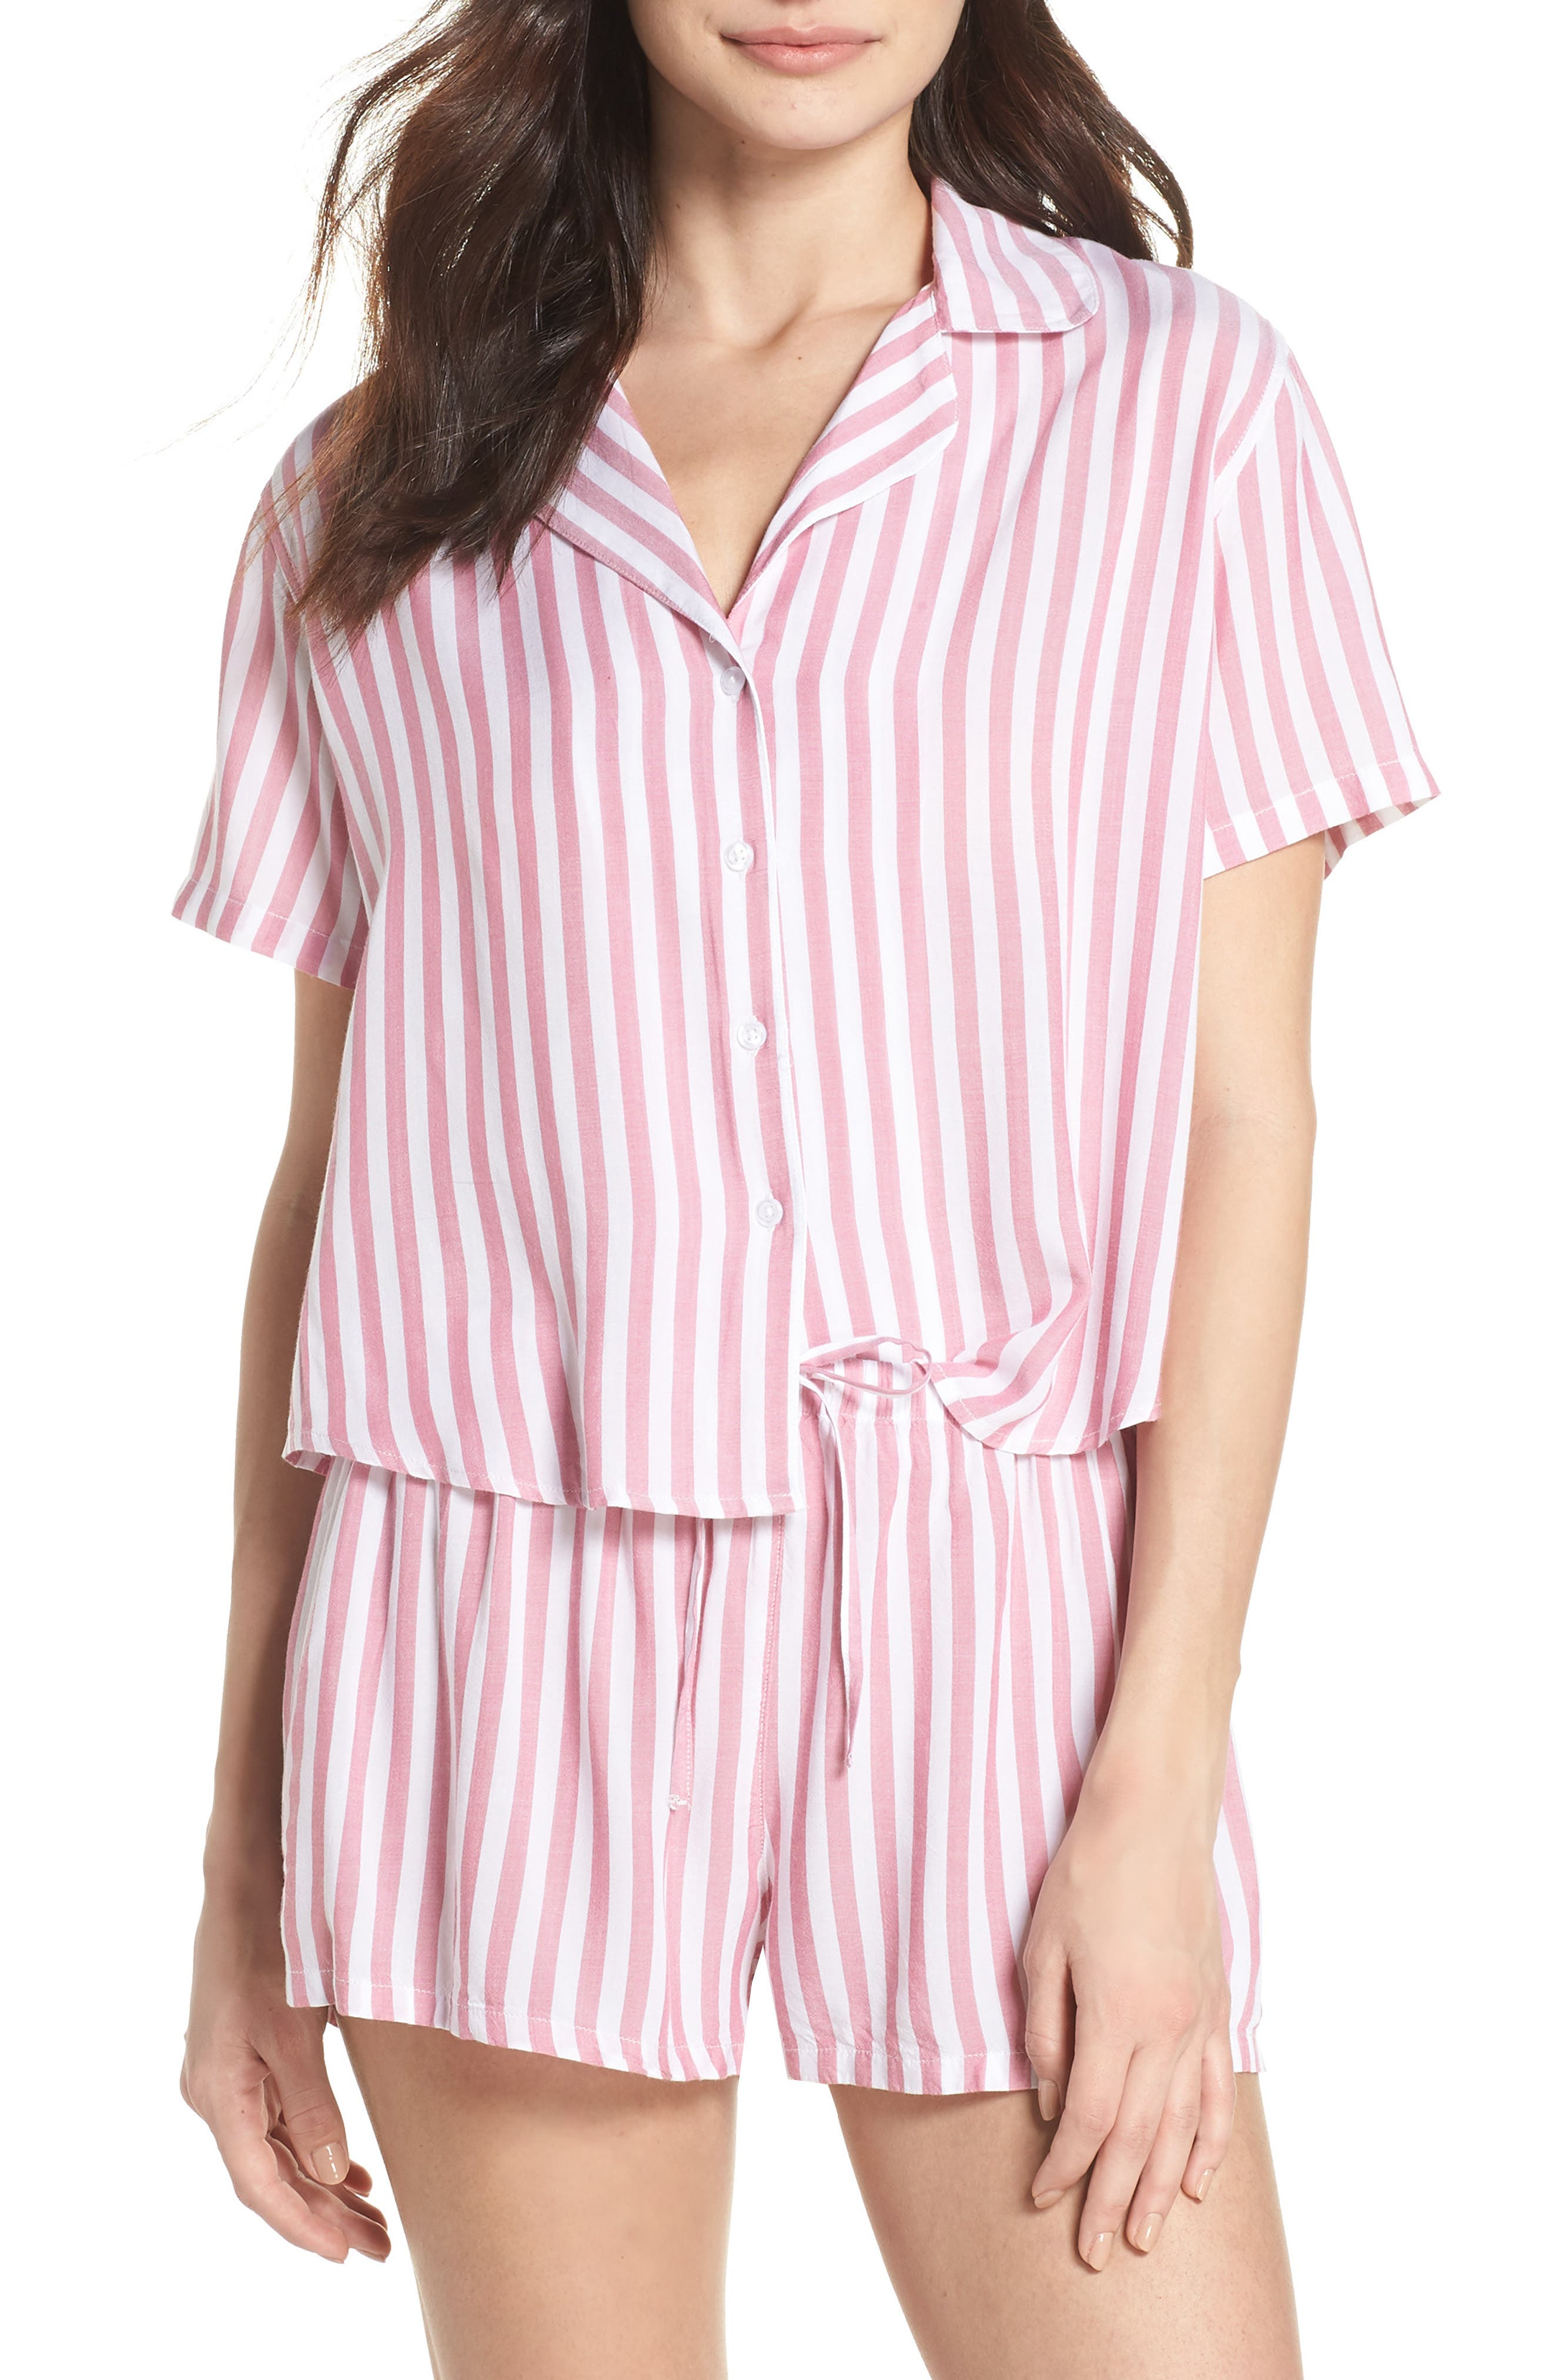 Stripe Short Pajamas,                             Main thumbnail 1, color,                             648